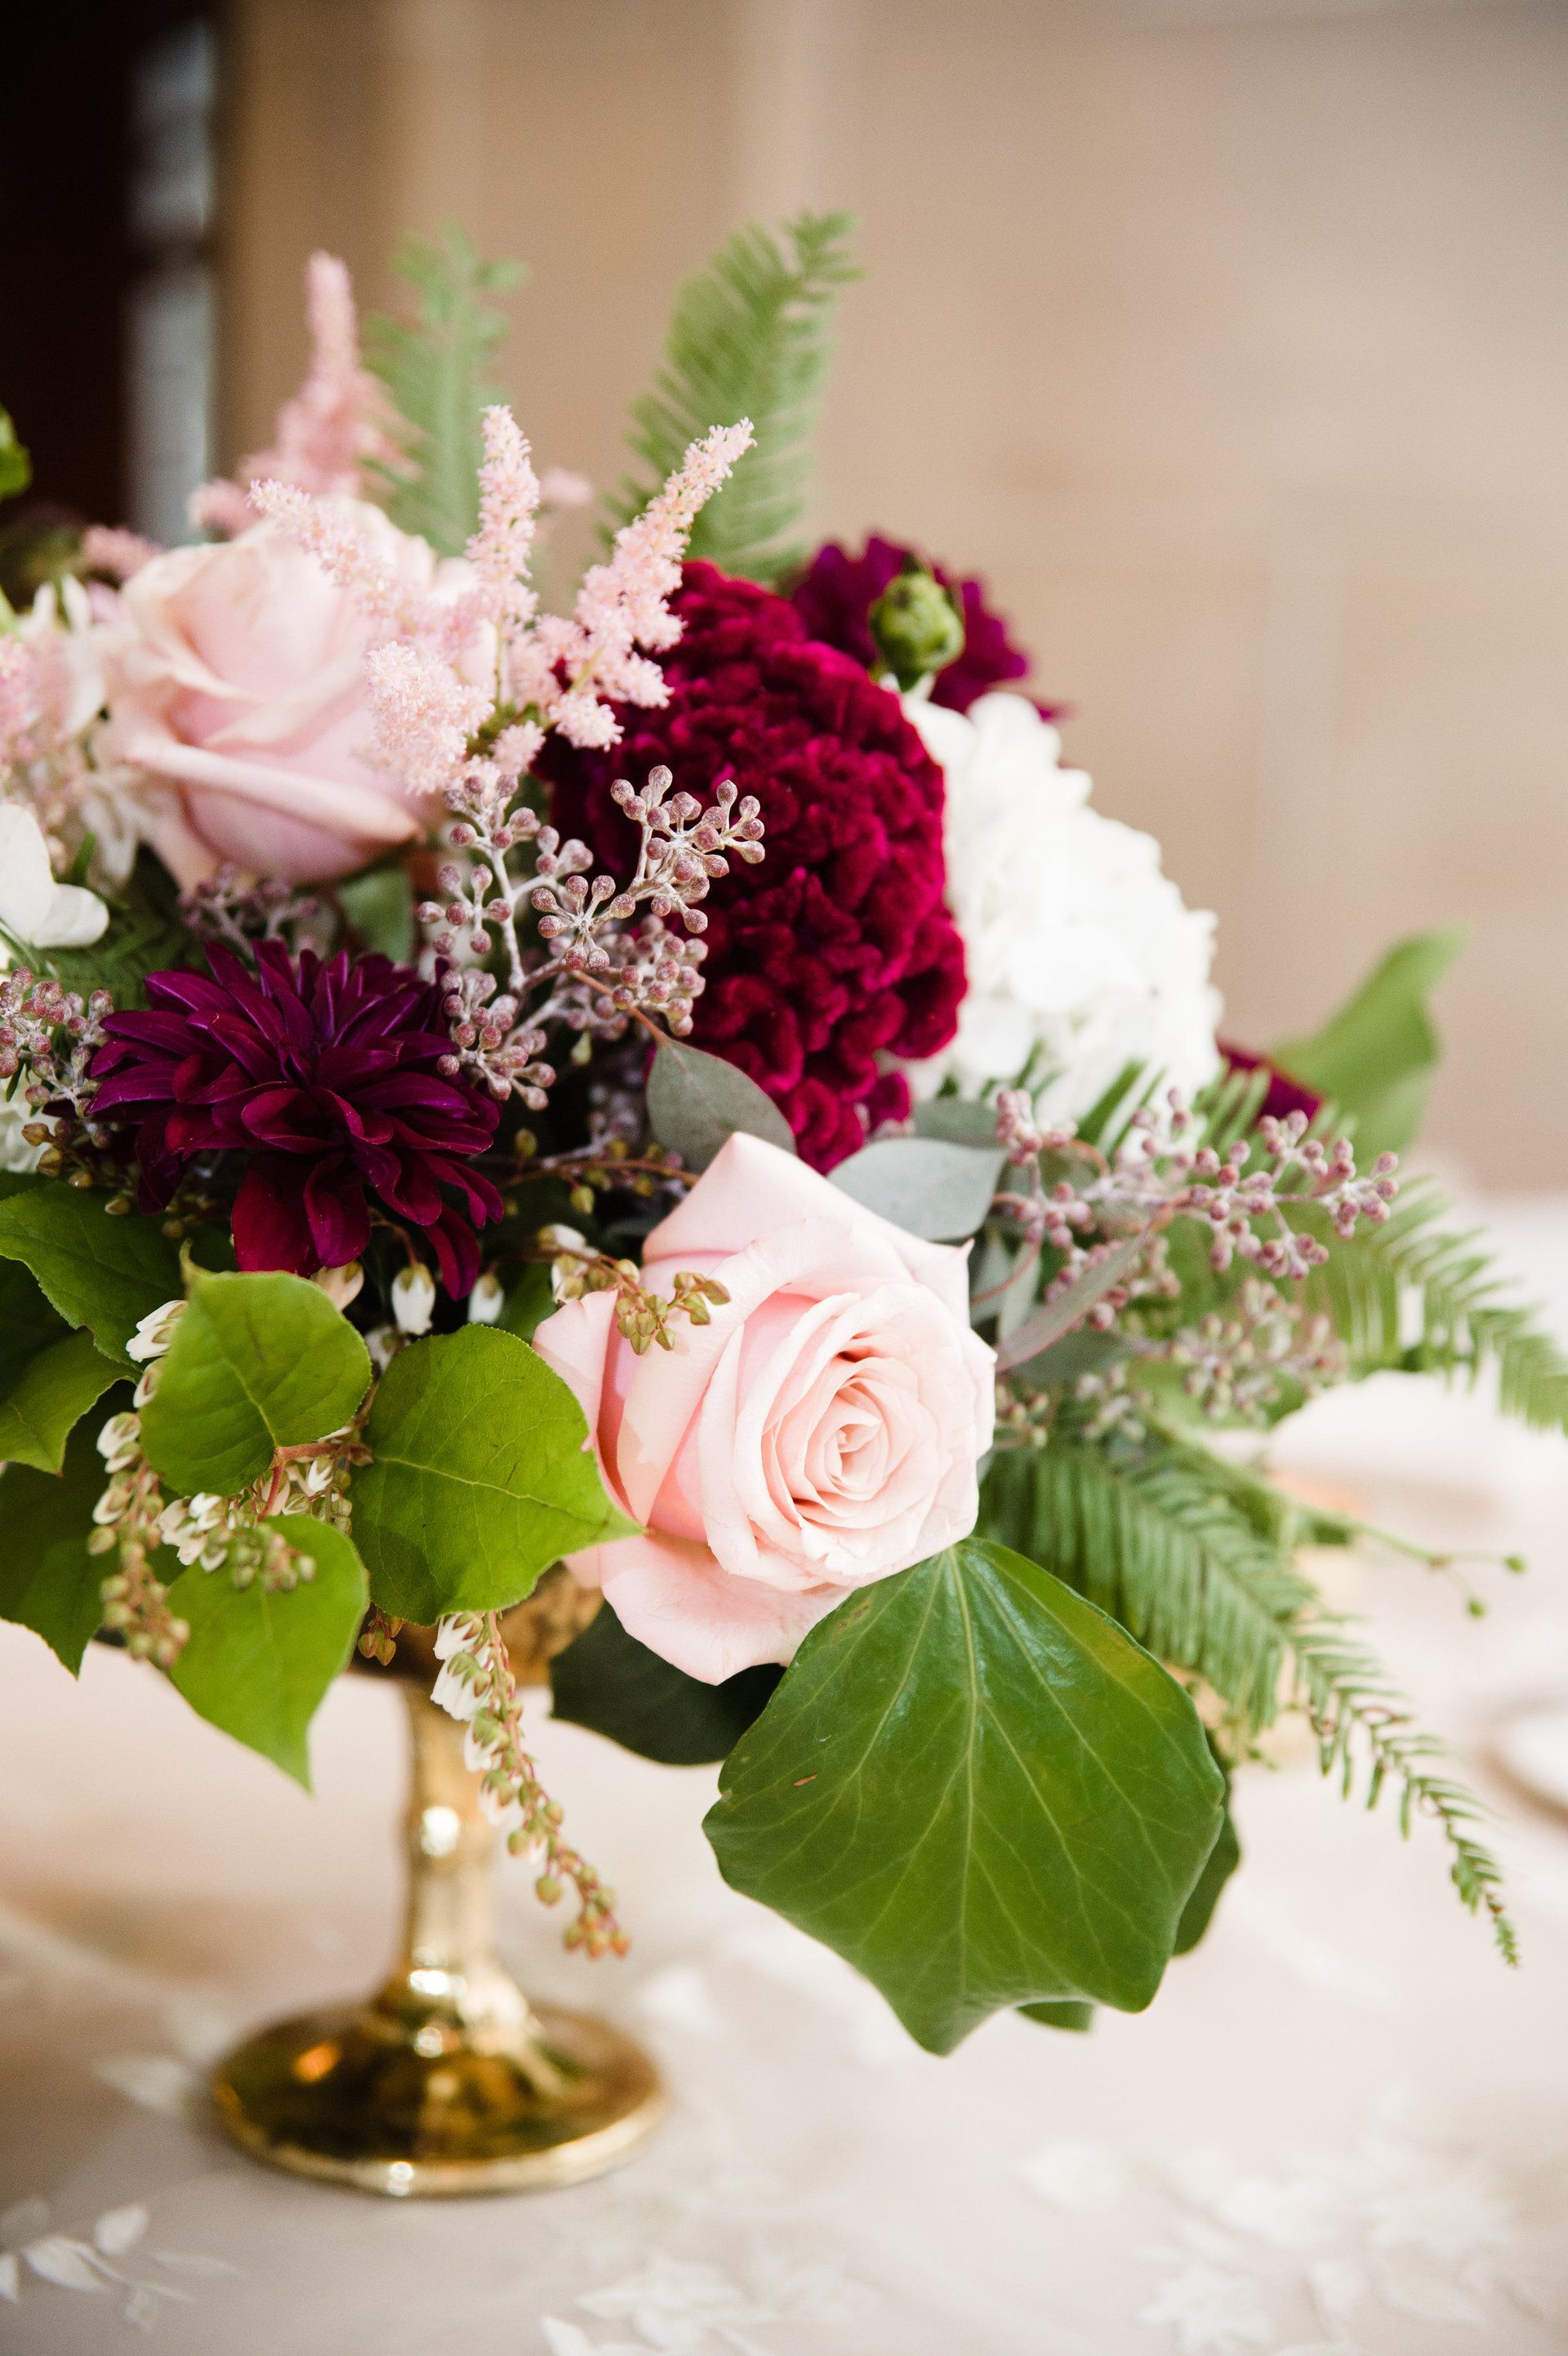 The Smarter Way to Wed Wedding, Centerpieces and Flower